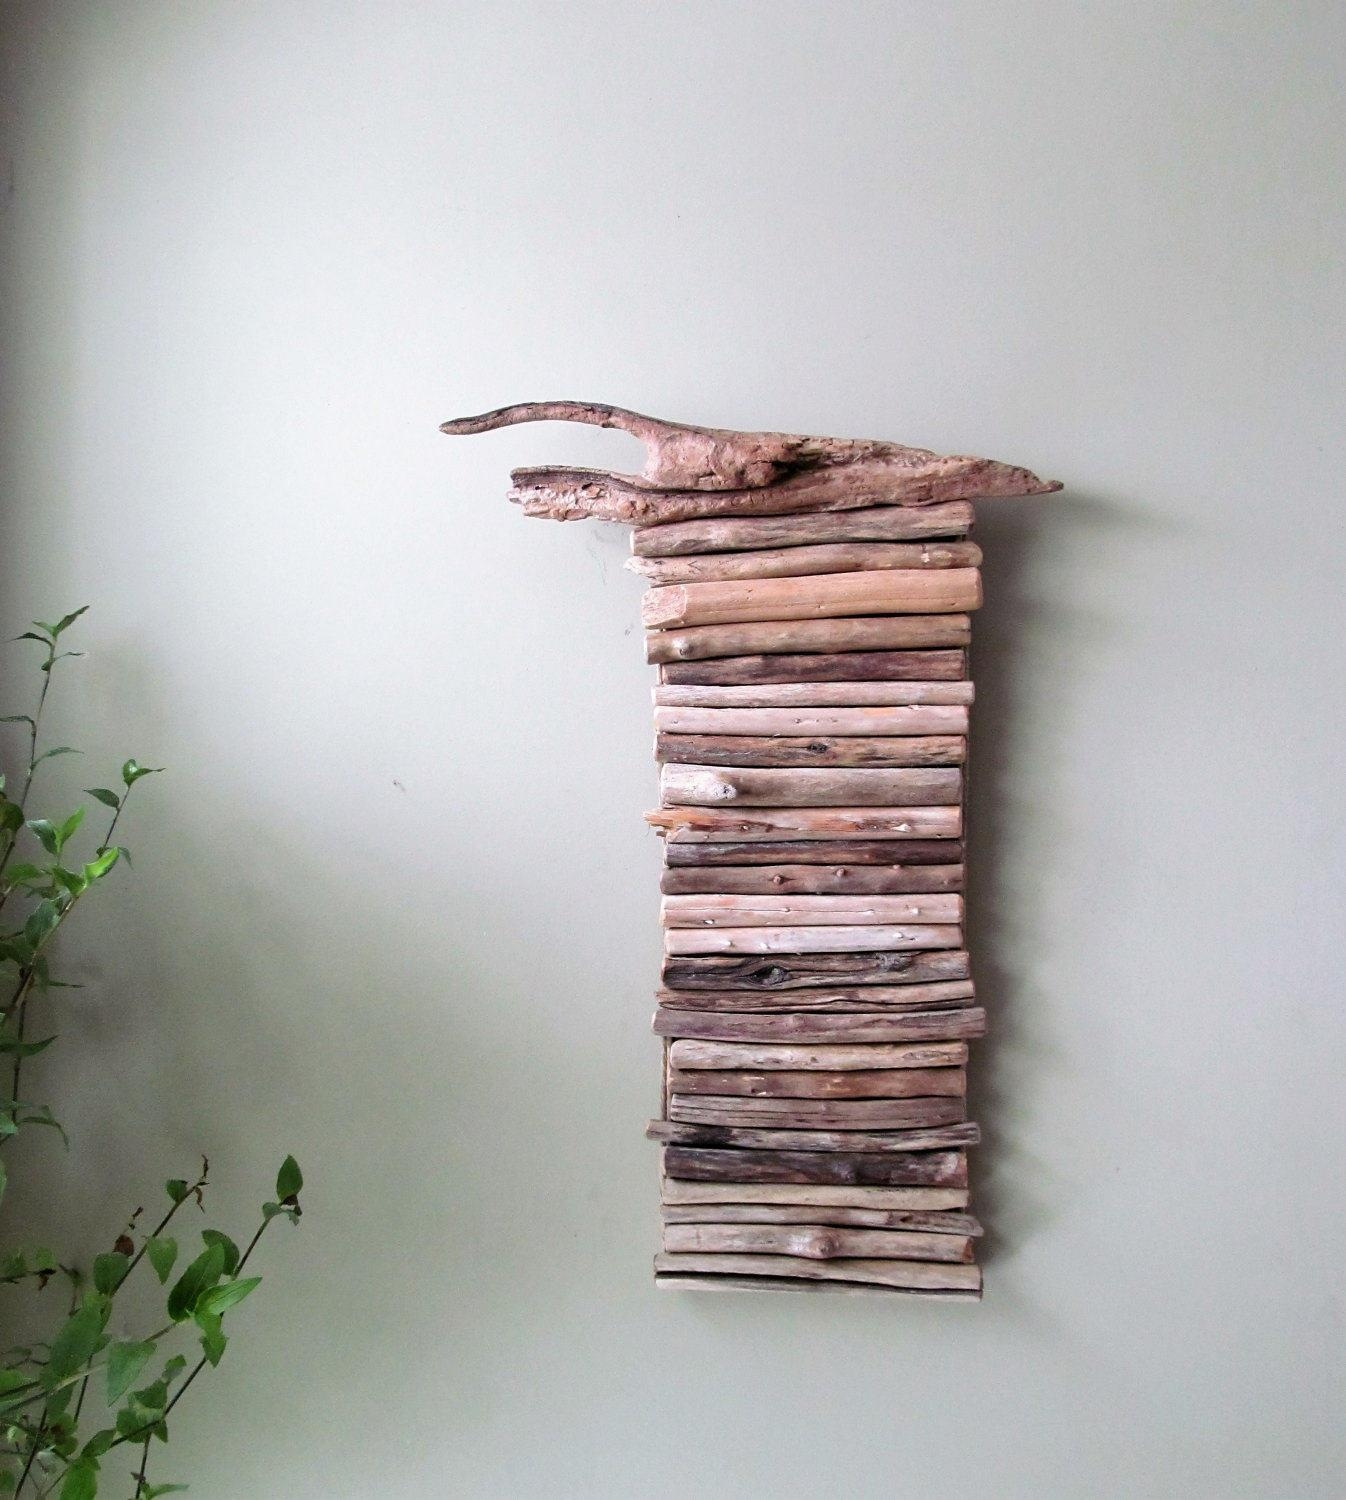 Creating Nice And Smart Ideas Of Driftwood Wall Art – Theydesign With Regard To Driftwood Wall Art (View 4 of 20)